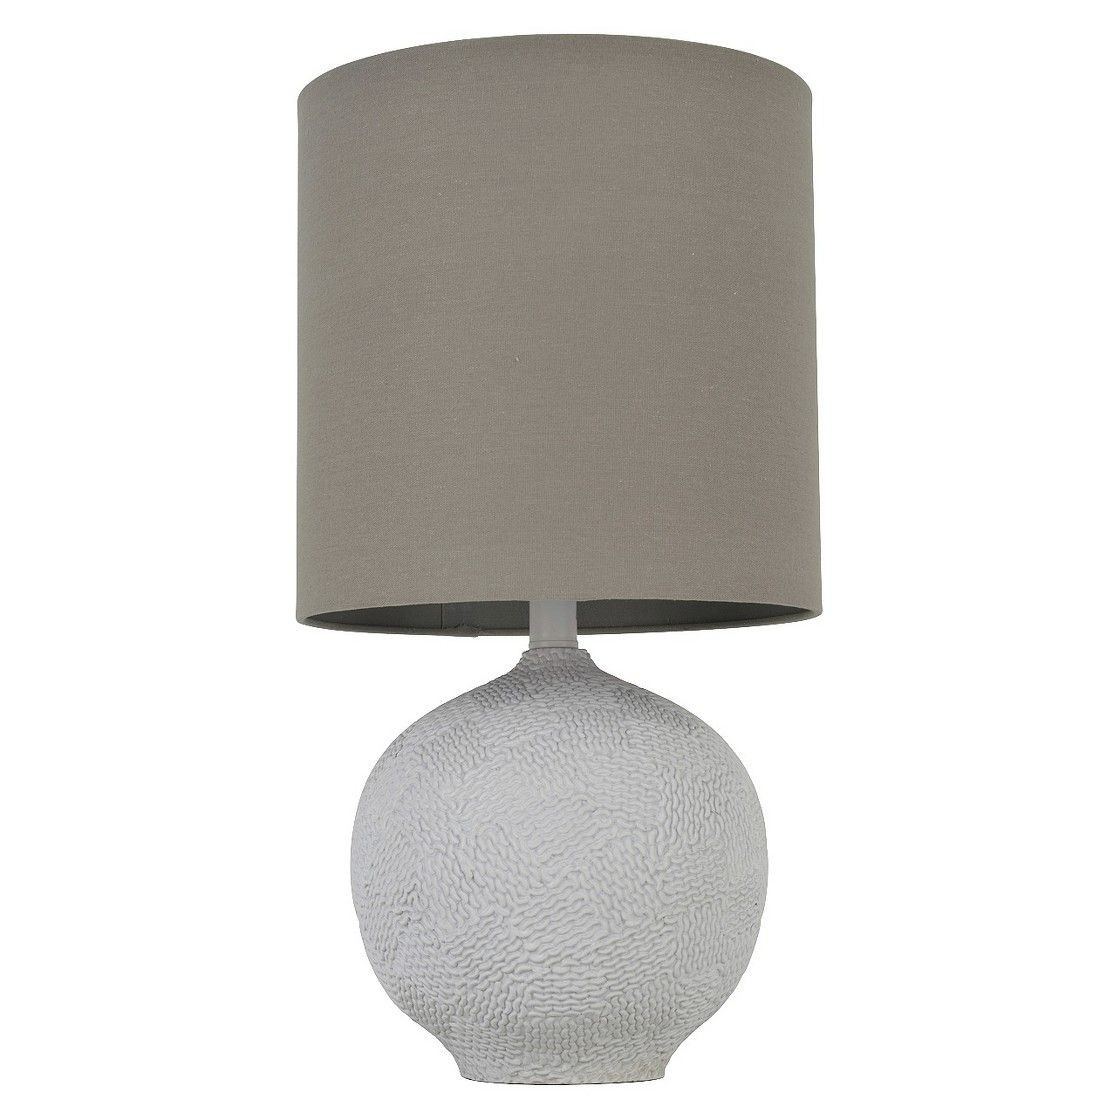 J Hunt Home Table Lamps 1